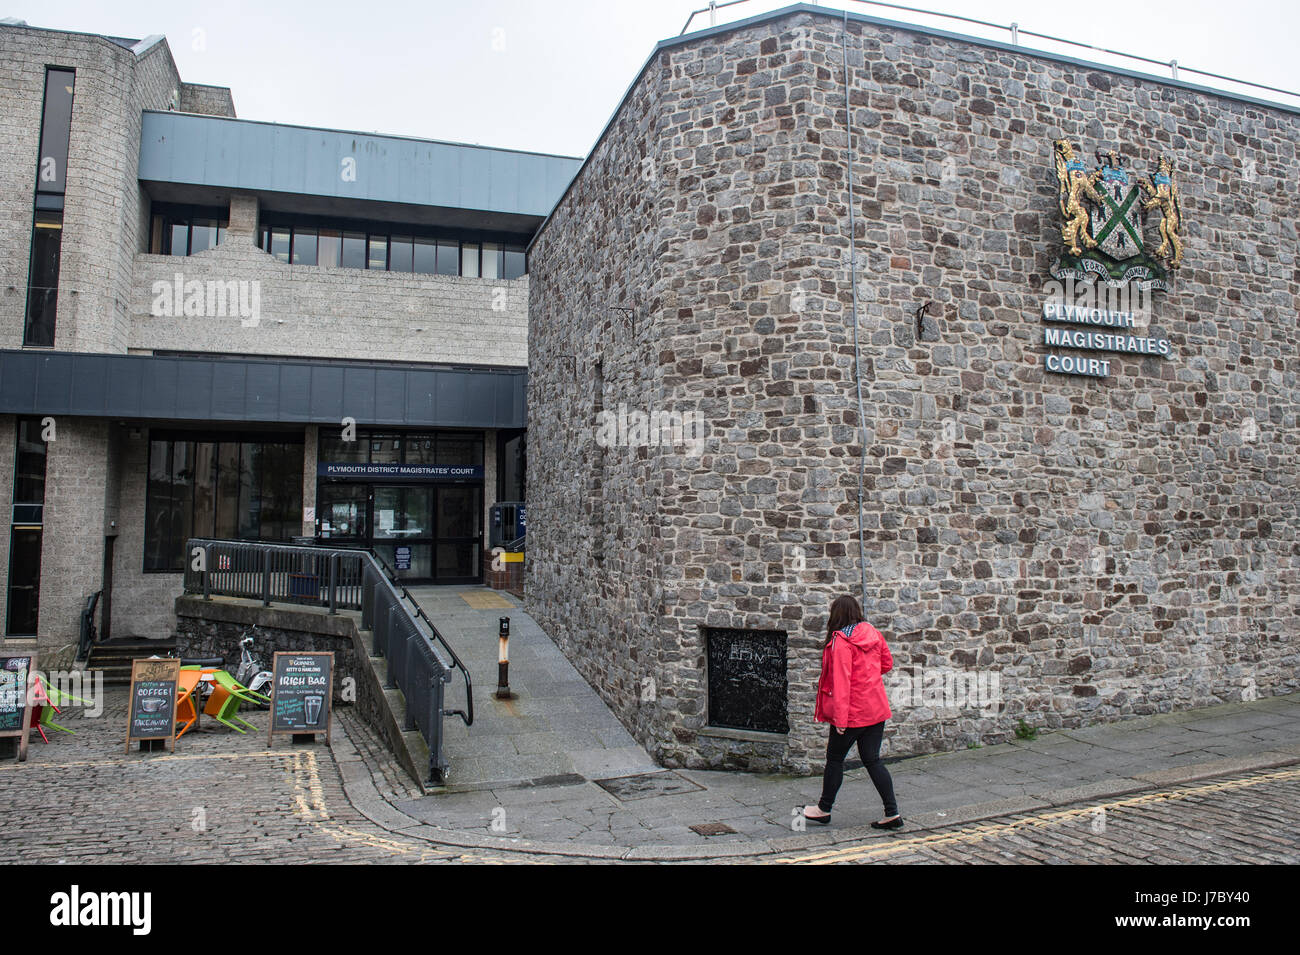 Copyrighted Image by Paul Slater/PSI - Plymouth Magistrates Court. Devon UK. - Stock Image